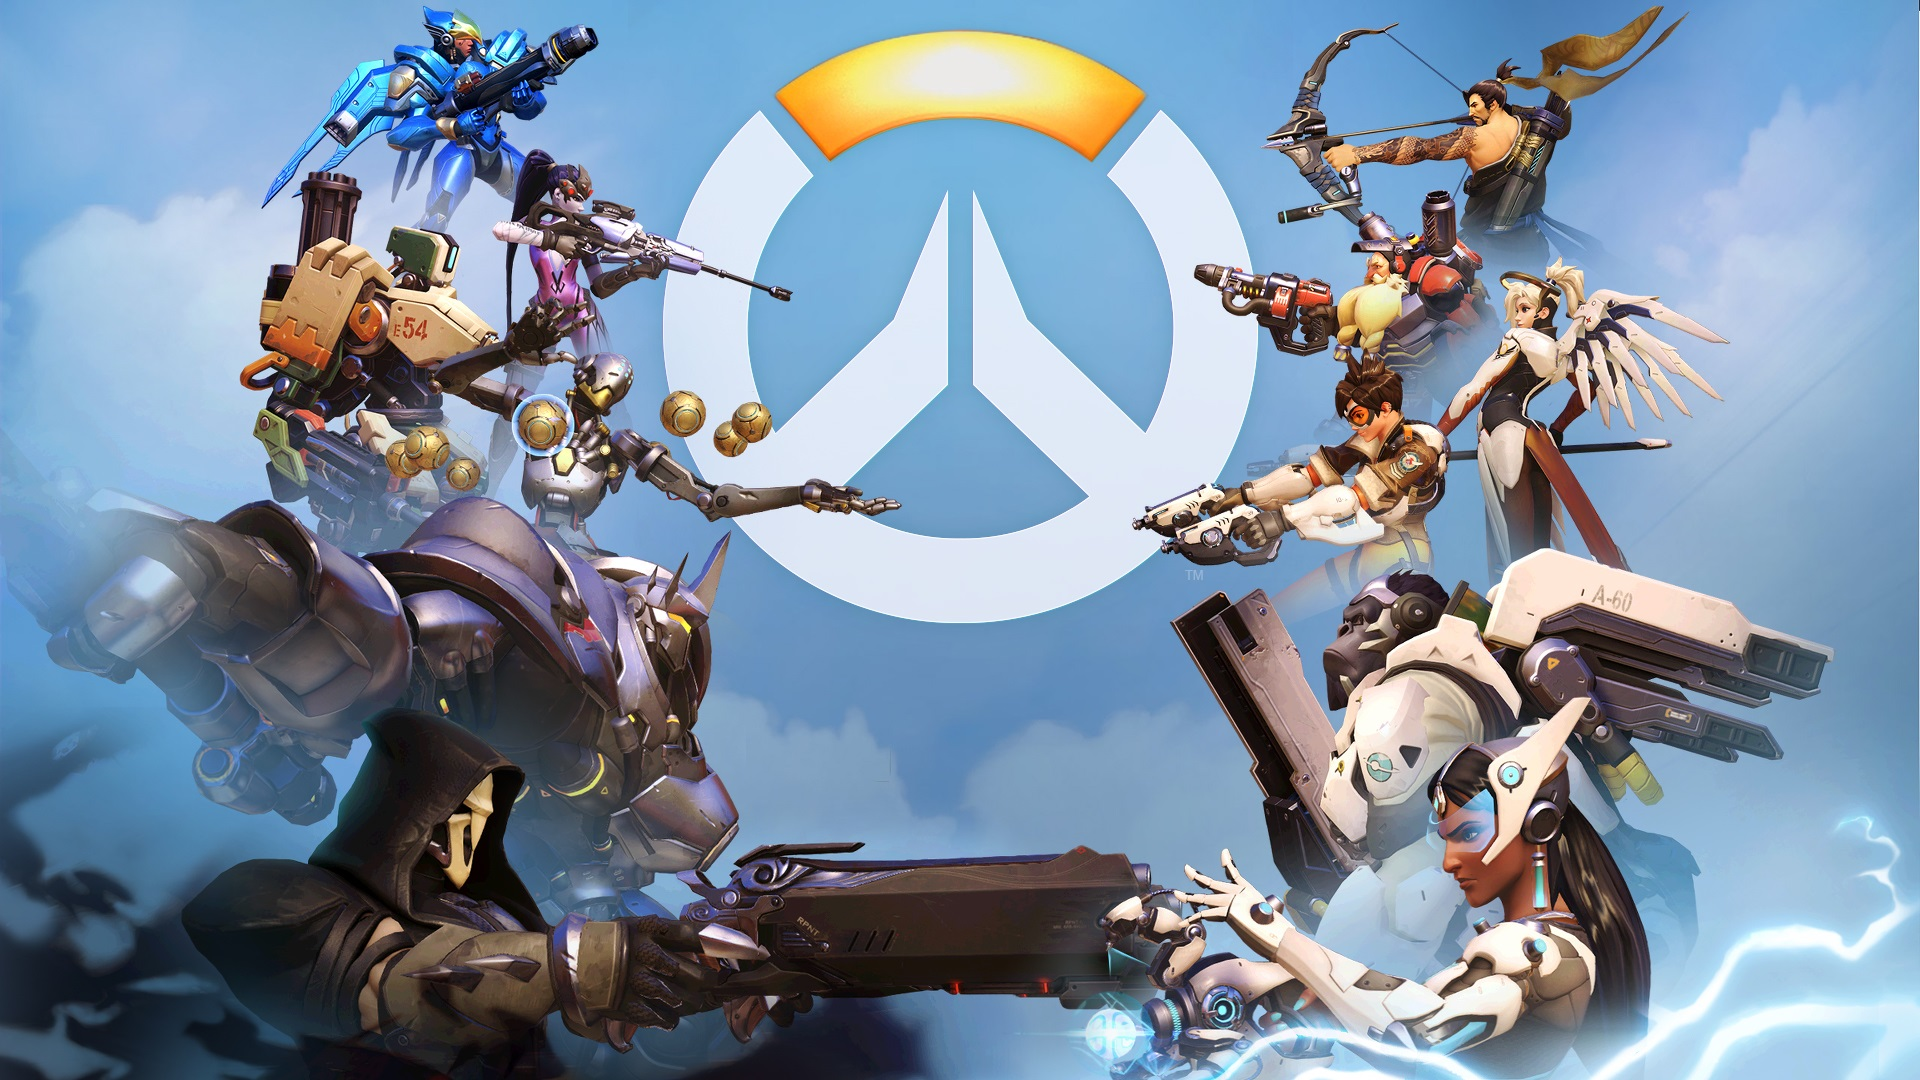 Wallpaper Overwatch Popular Pc Games 1920x1080 Full Hd 2k Picture